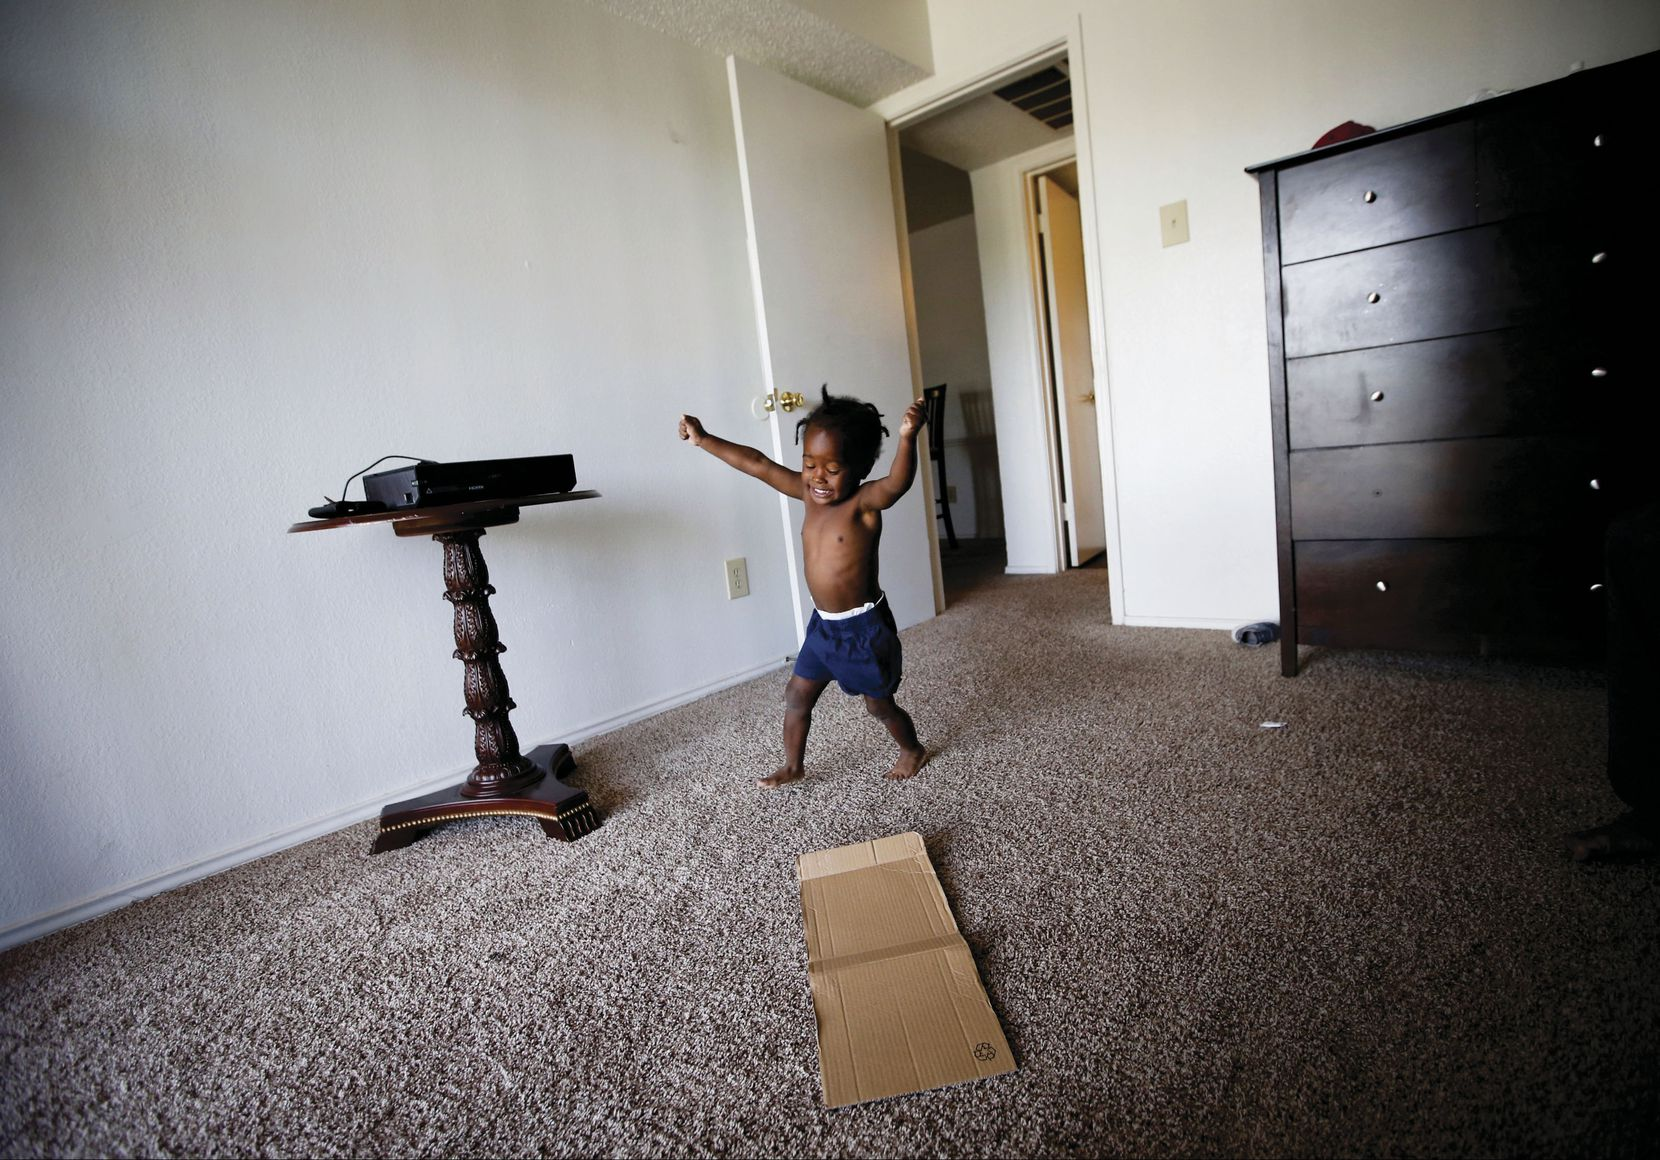 Jordan Miller, 2, runs in circles at his new apartment in Dallas. His father, Joshua Miller, said the new space has his son acting like a 2-year-old again. Before moving into the one-bedroom unit, the Millers lived in a small room at the Family First Men's Shelter.